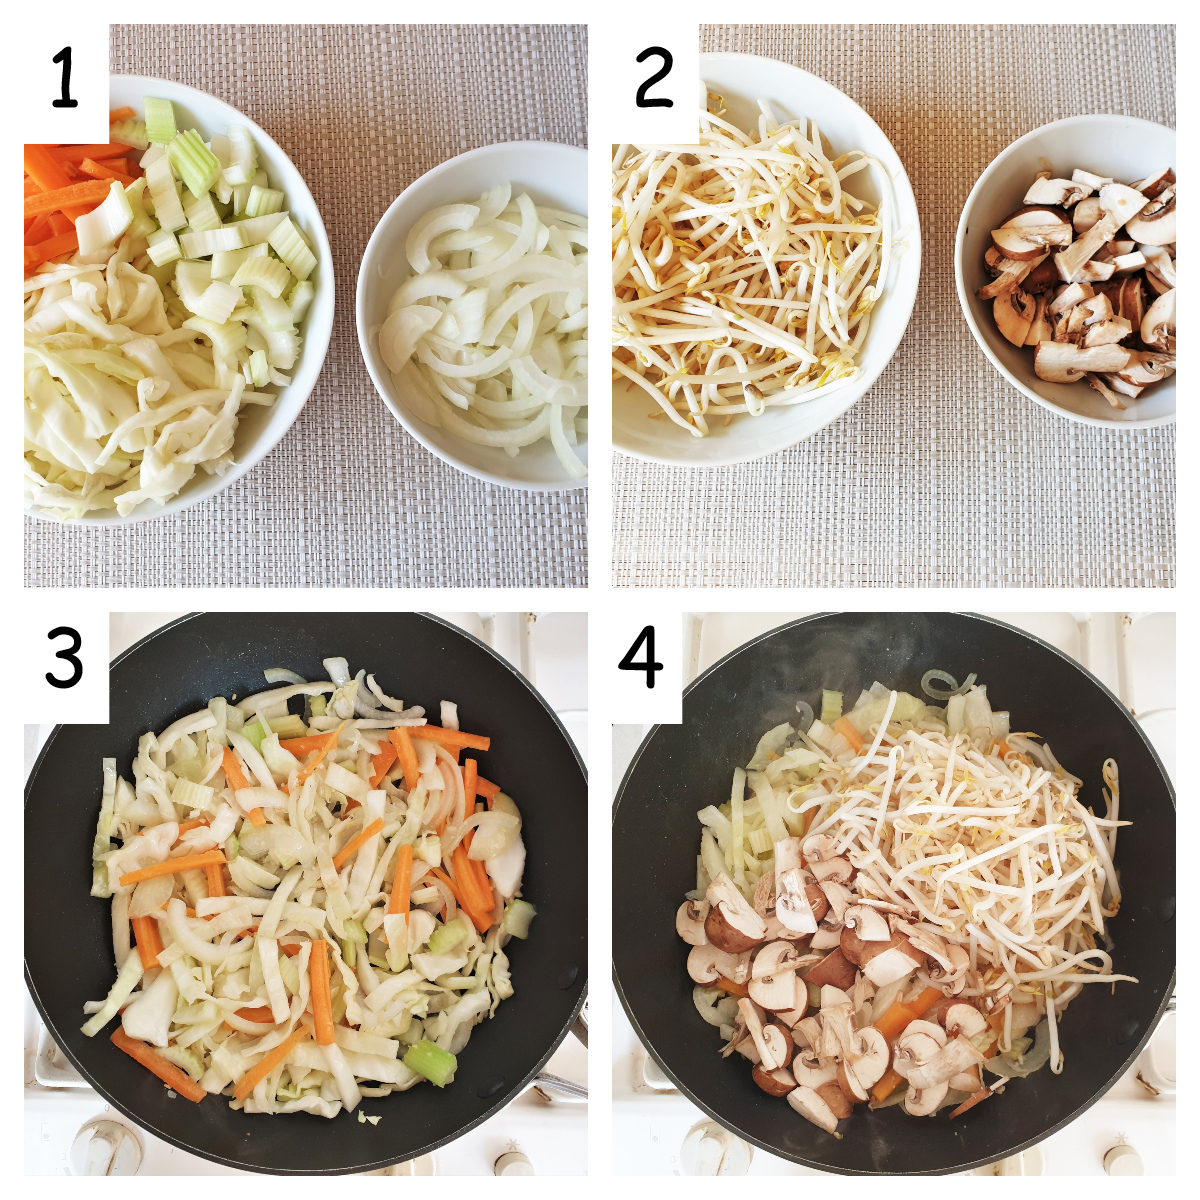 First collage of images showing steps for making chow mein.